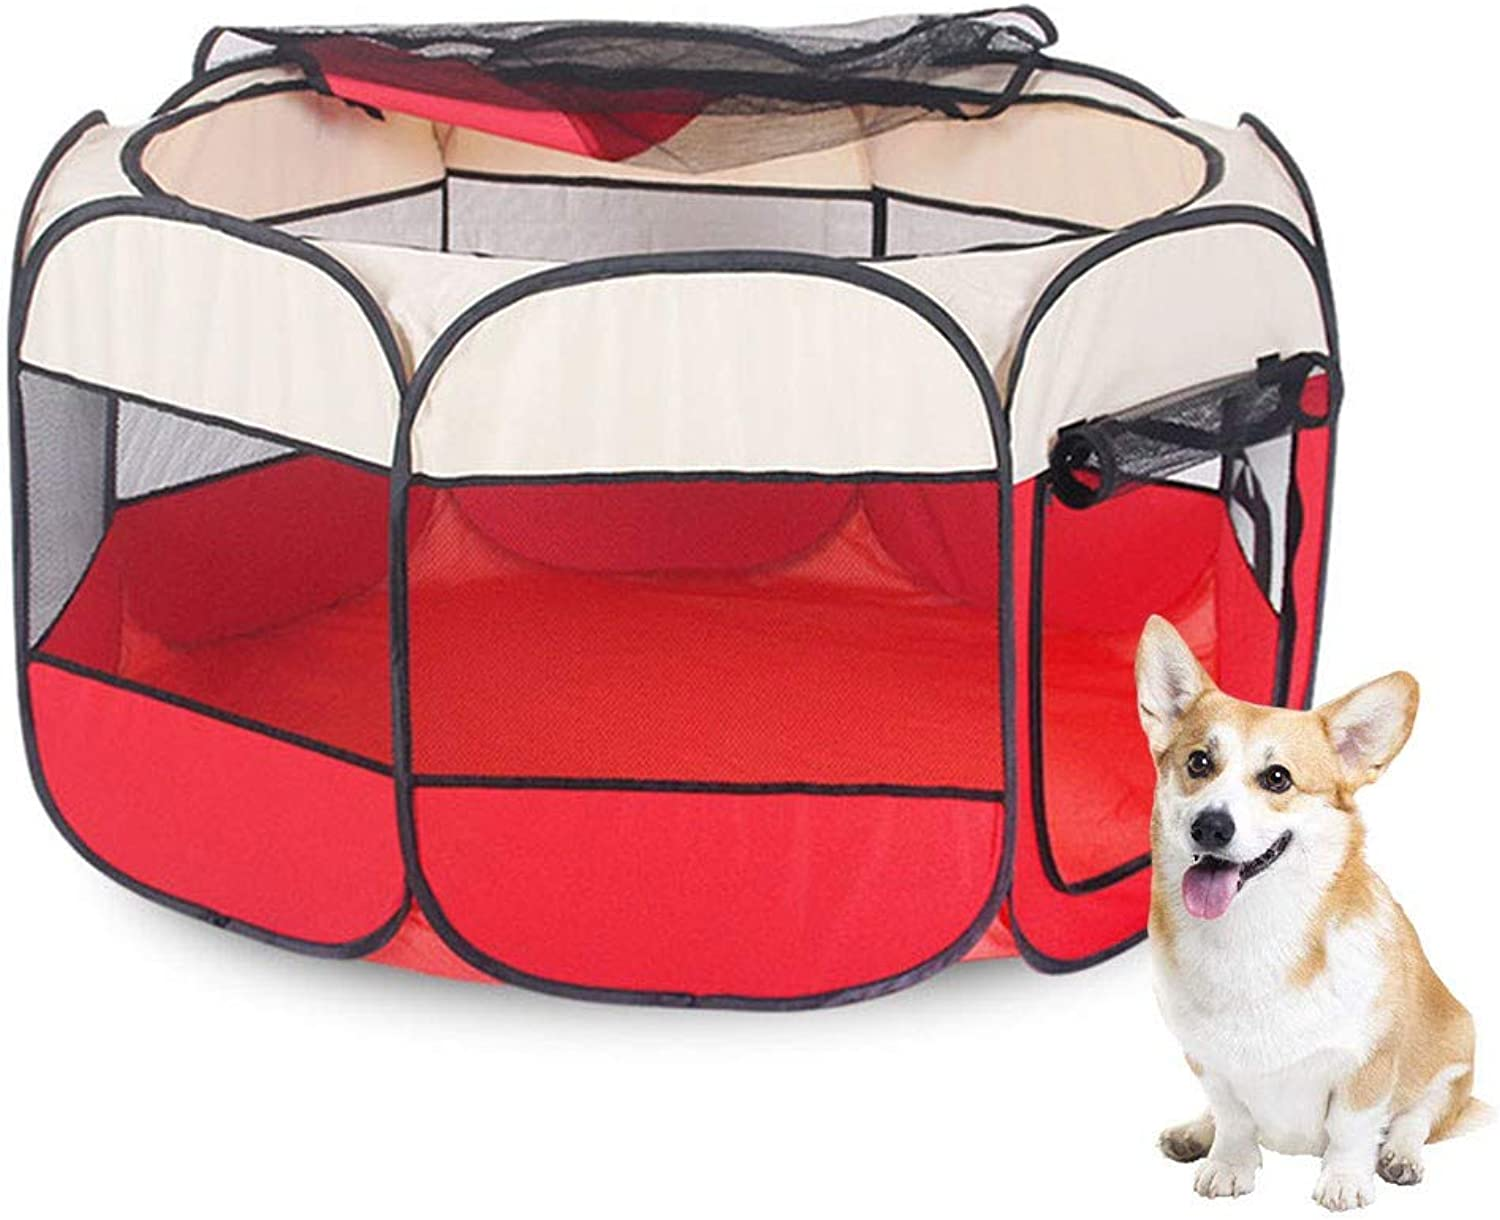 Pet playpen Pet pens for dogs,dog tent Pets Foldable, Indoor Outdoor use,Water resistant,Removable shade cover,Dogs Cats Rabbit (73X73X43cm)